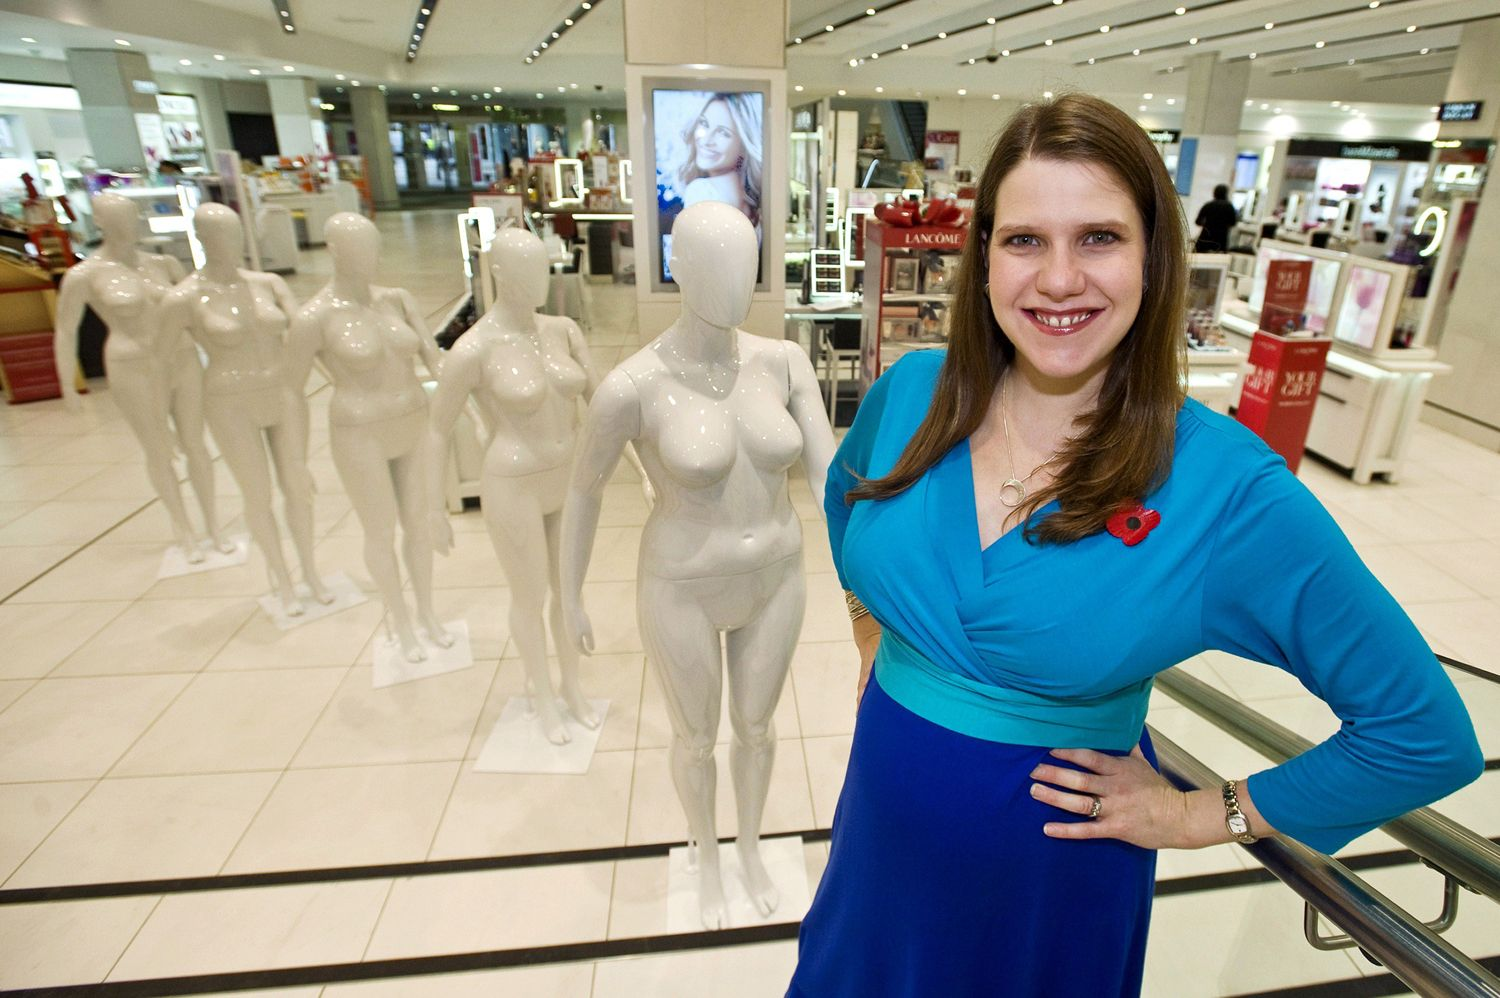 Store uses plus-size mannequins to reflect true shape of shoppers